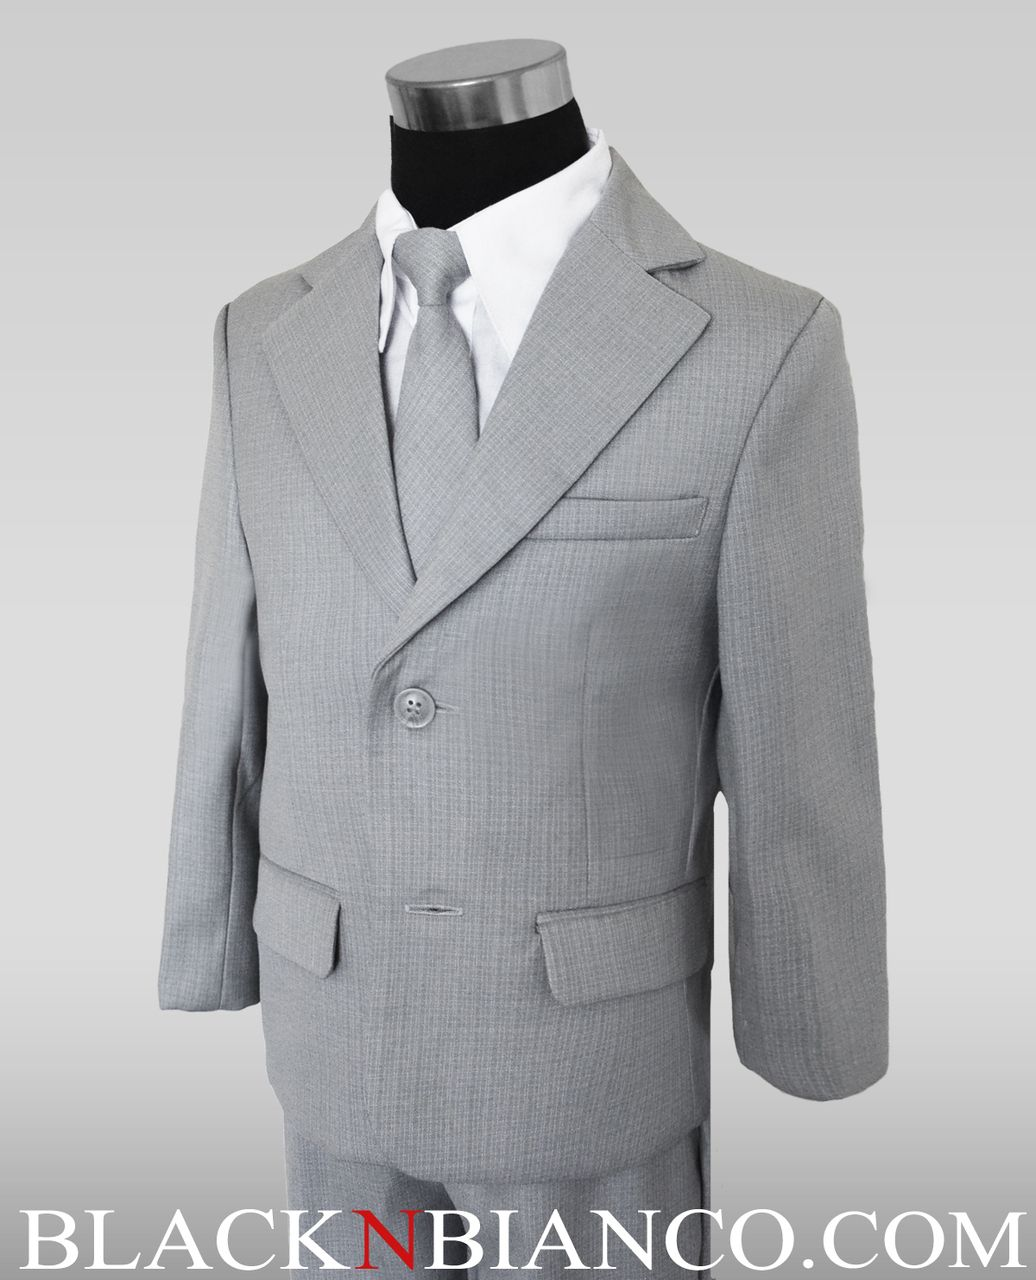 928974a398aa85 Black N Bianco - Boys 2 Button Light Gray Suit Complete Outfit Dresswear,  $49.99 (